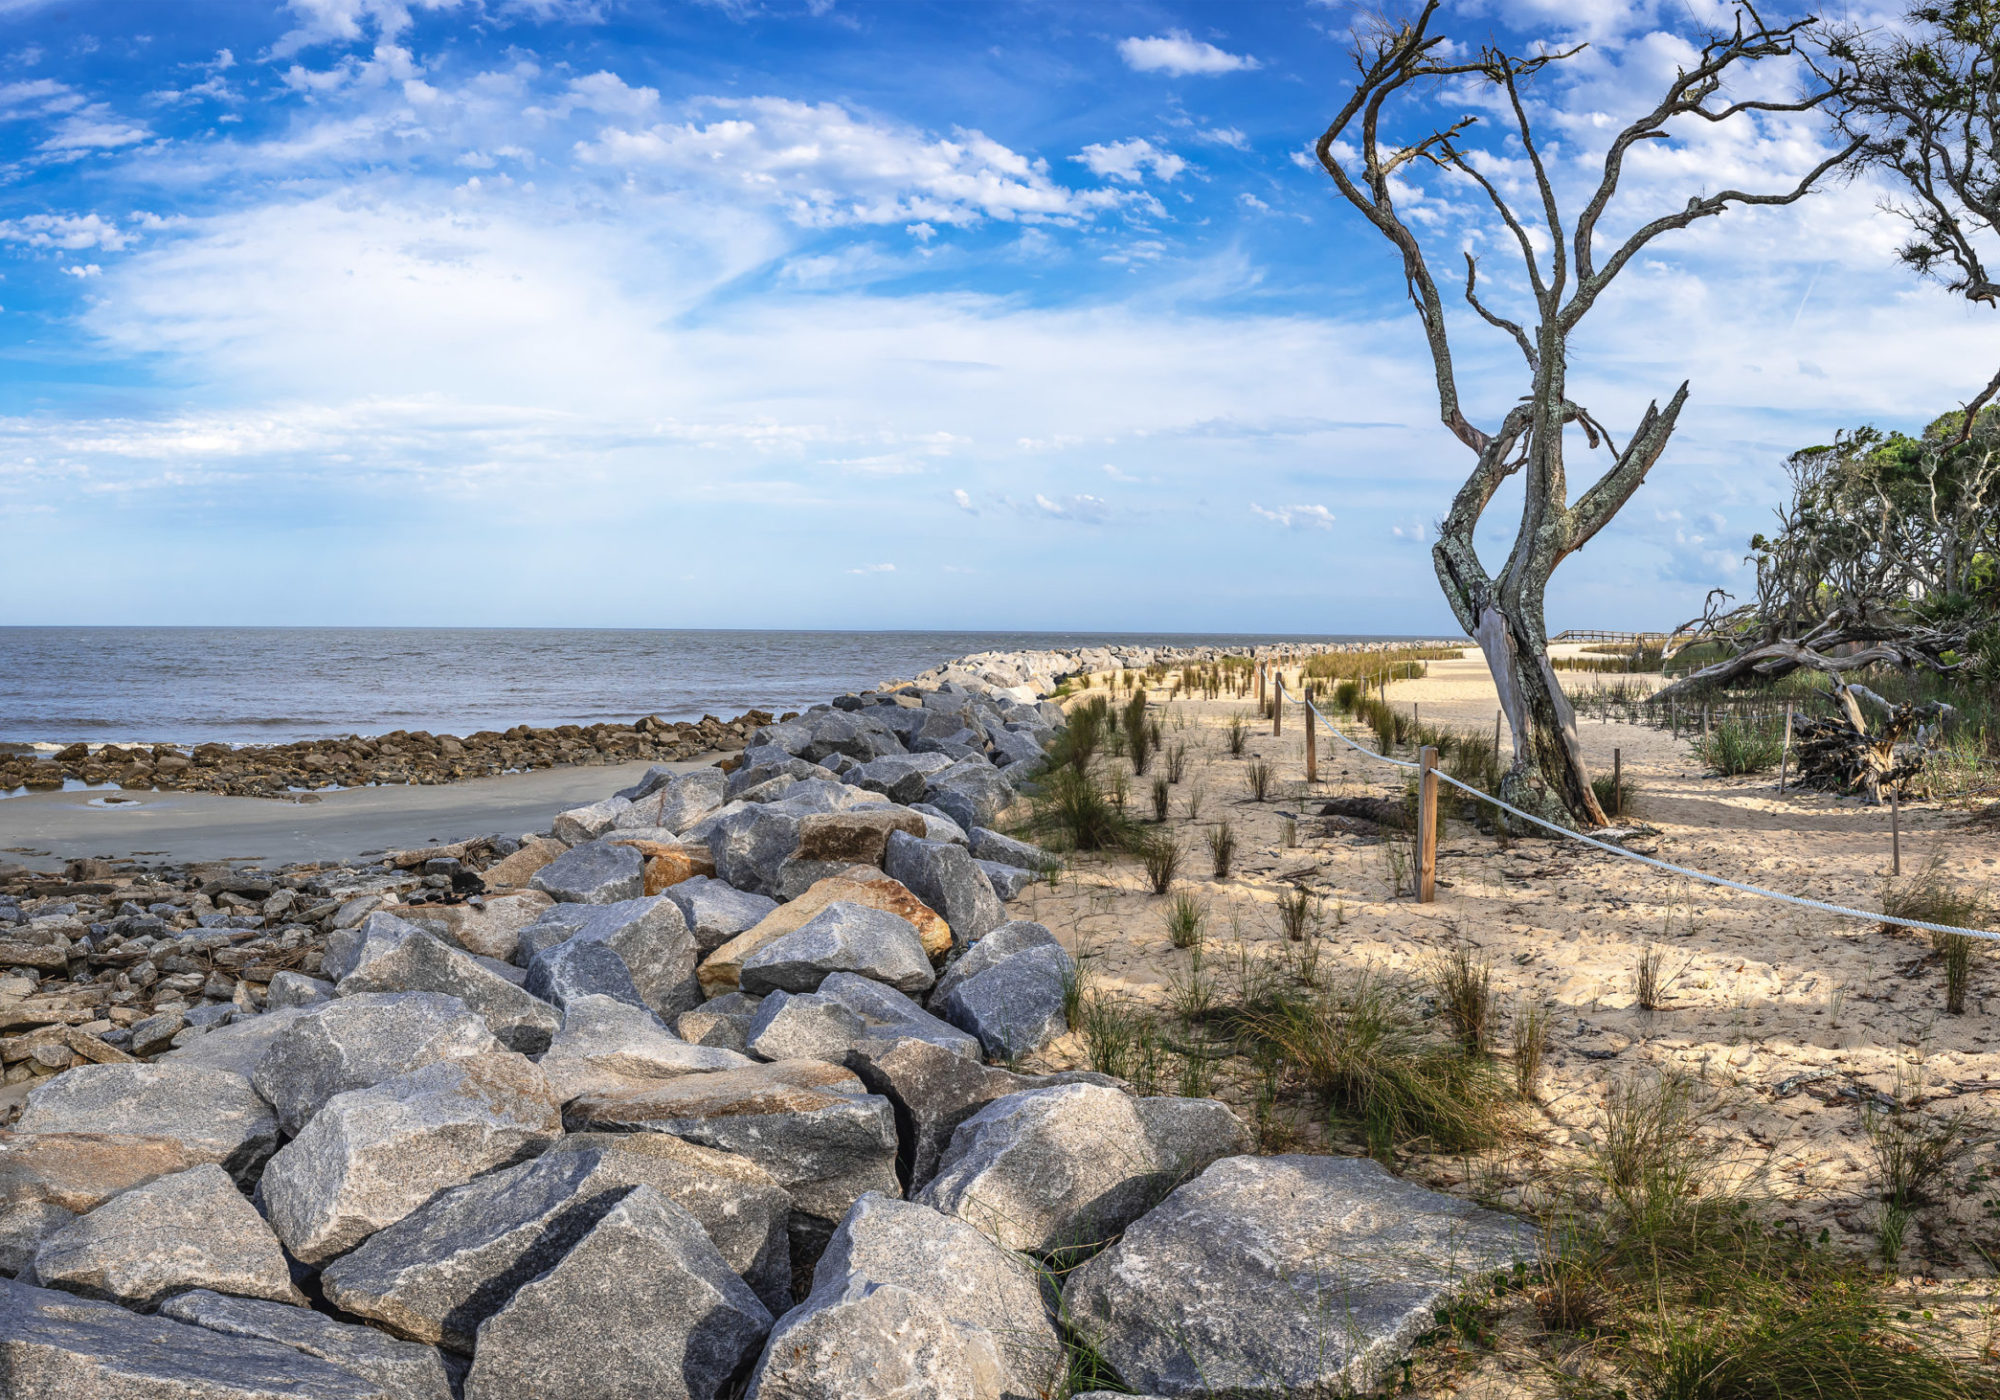 Officials have erected a small, rocky seawall to preserve this beach, just south of Driftwood beach, and on the northeastern side Jekyll Island. Credit: Teake Zuidema for Nexus Media News